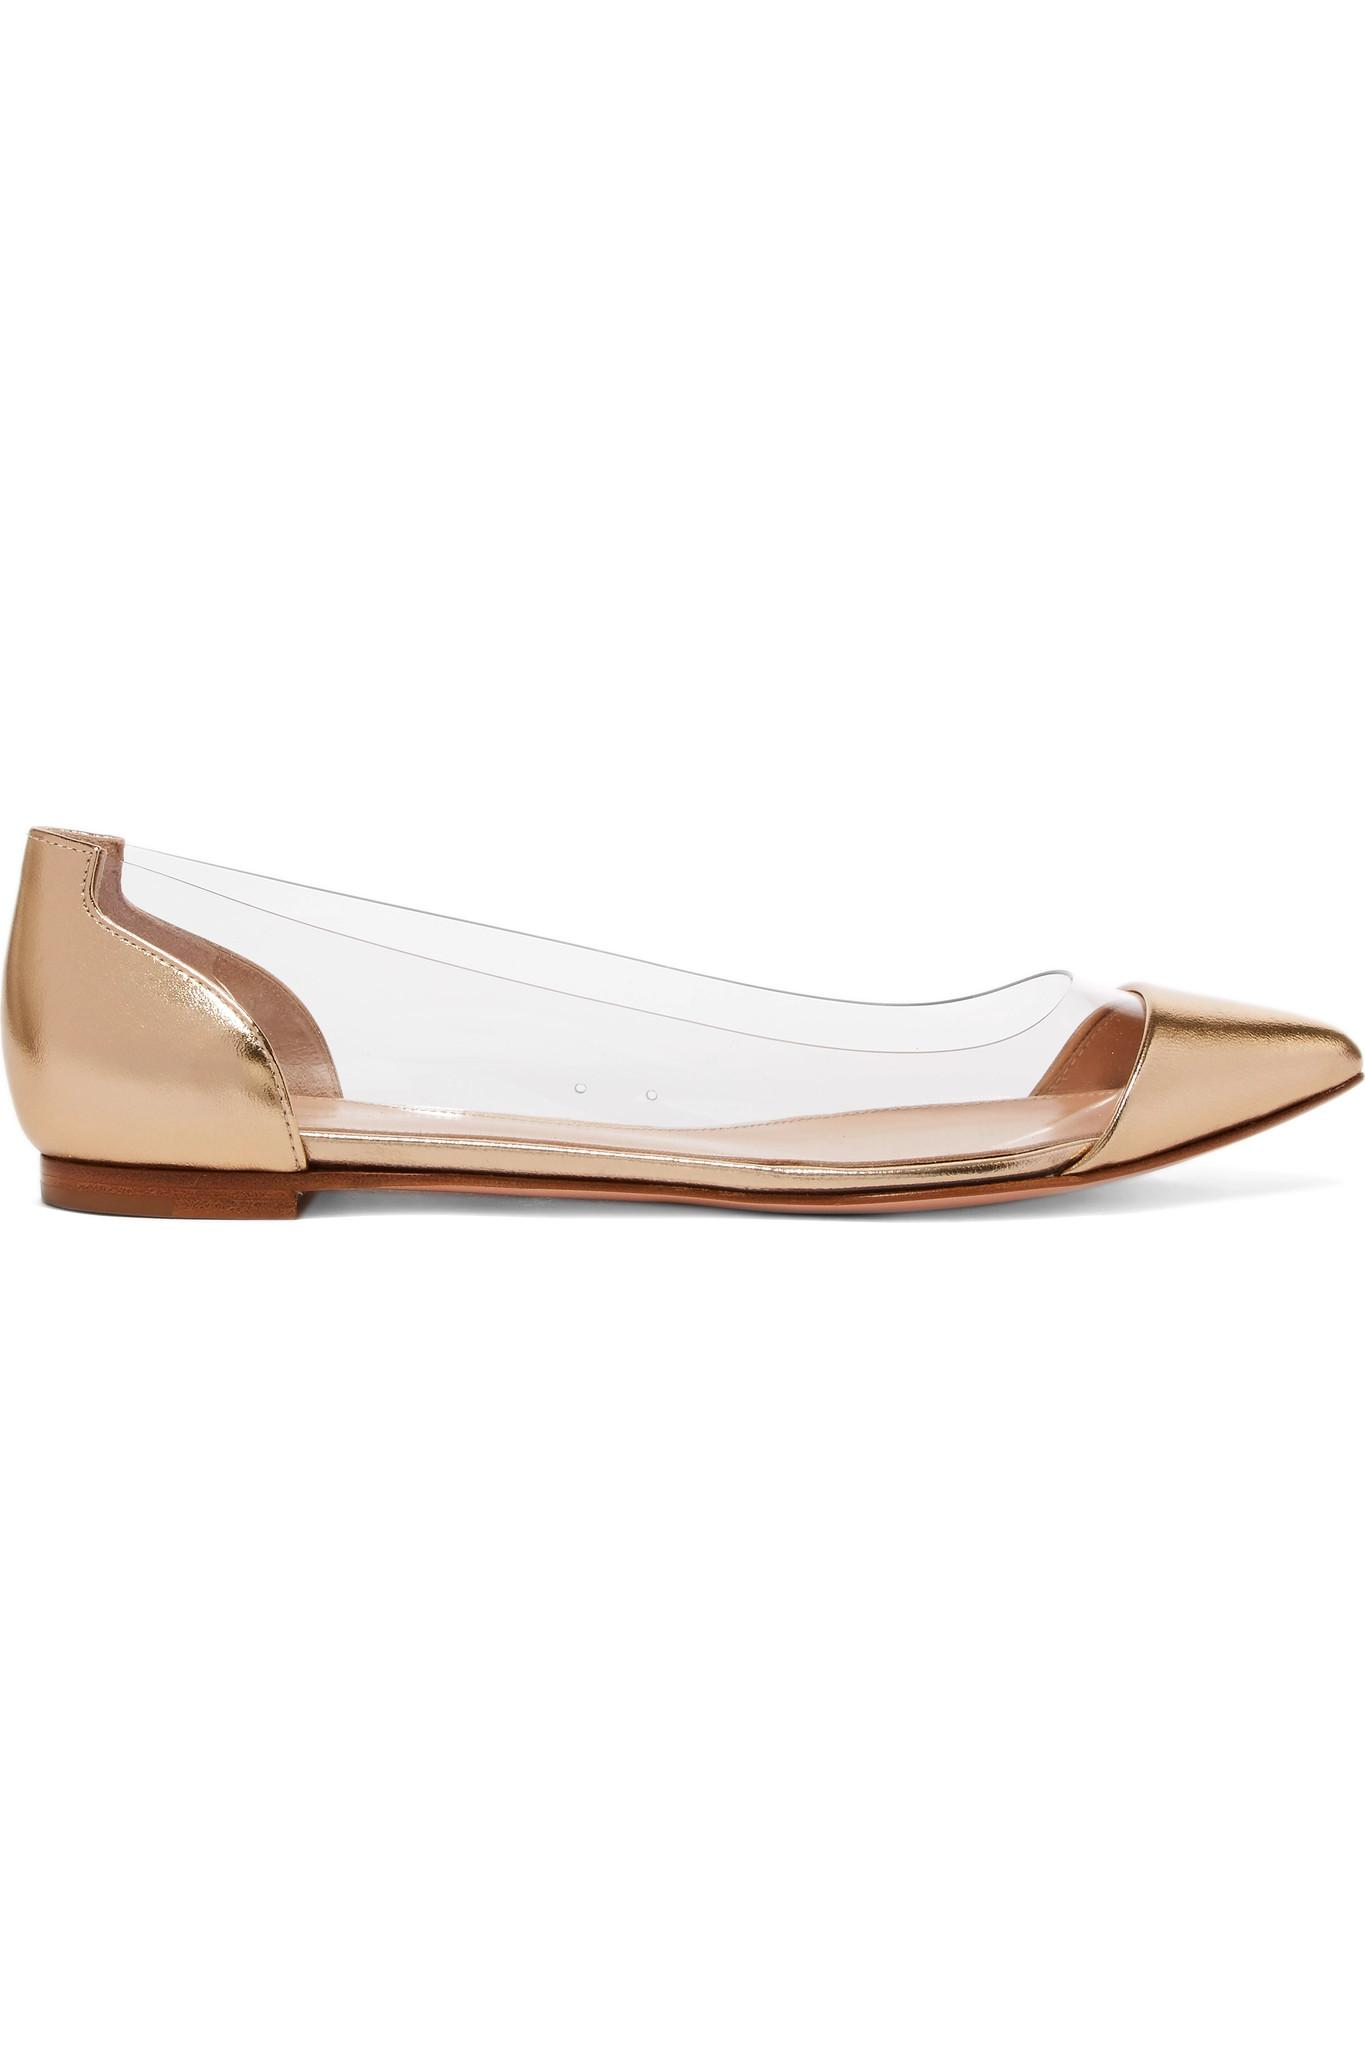 6d4977fcf16 Lyst - Gianvito Rossi Metallic Leather And Pvc Point-toe Flats in ...